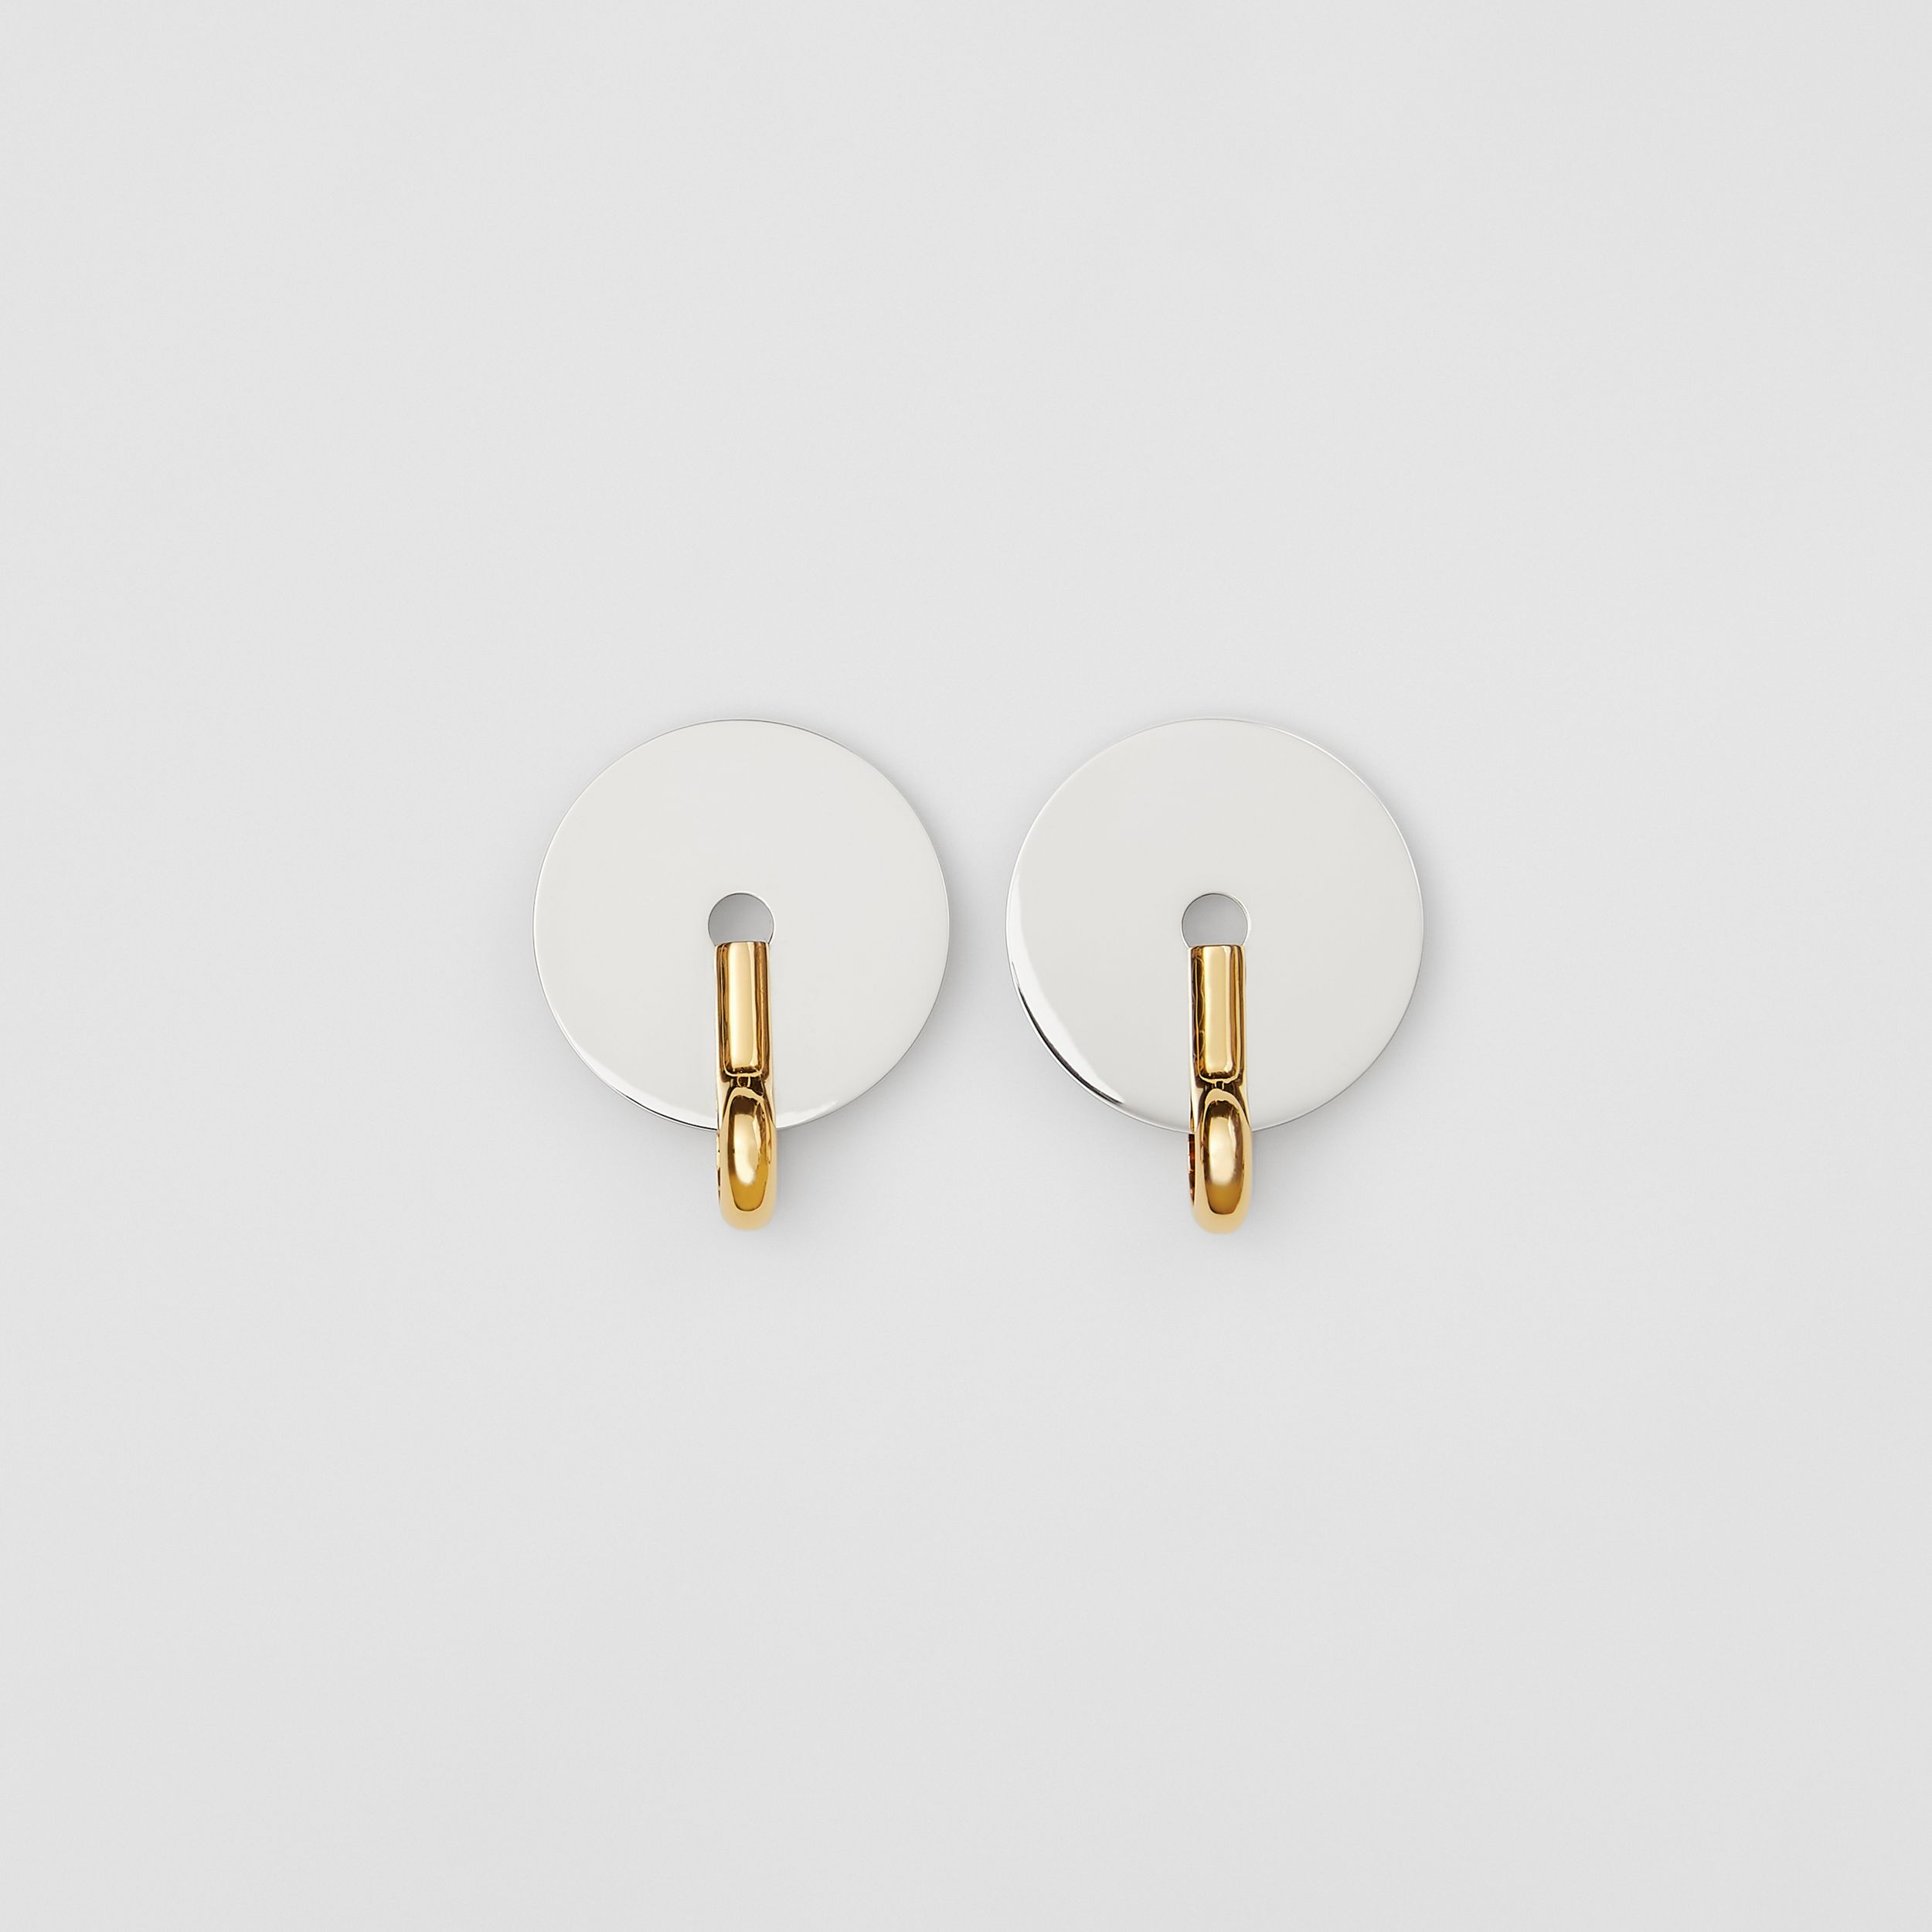 Palladium and Gold-plated Disc Earrings in Palladium/light - Women | Burberry Canada - 1